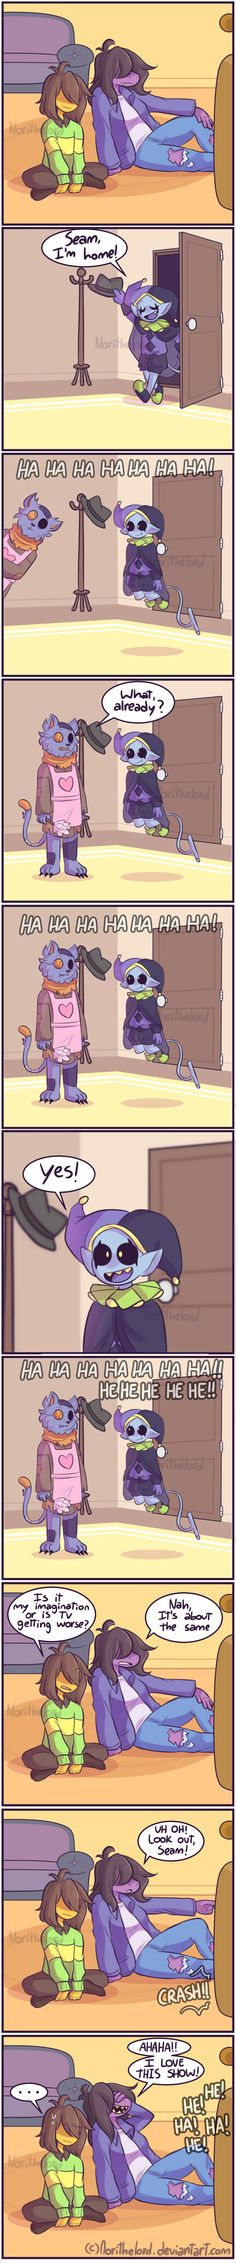 The Jevil and Seam show! - comic (Parody) by NoriTheLord Undertale Fanart, Undertale Comic, Pokemon, Chara, Toby Fox, Cartoon Games, Gaming Memes, Indie Games, Guardians Of The Galaxy